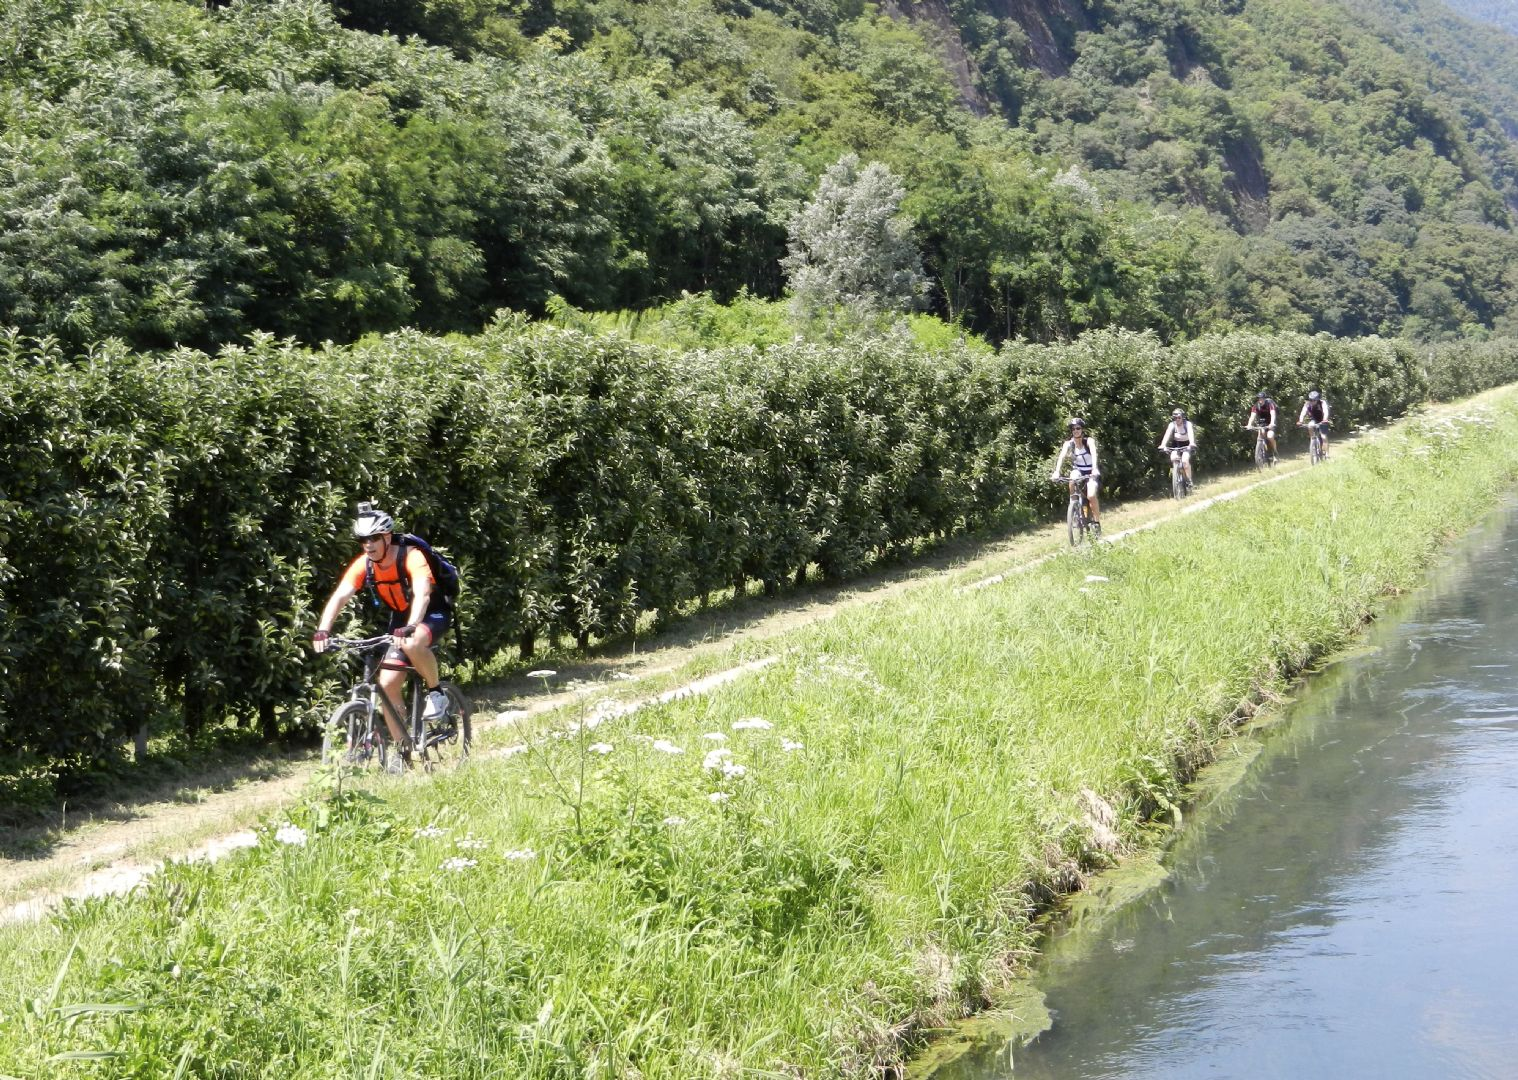 cycling-holiday-in-germany-and-austria-danube - Germany and Austria - The Danube Cyclepath (8 Days) - Self-Guided Leisure Cycling Holiday - Leisure Cycling